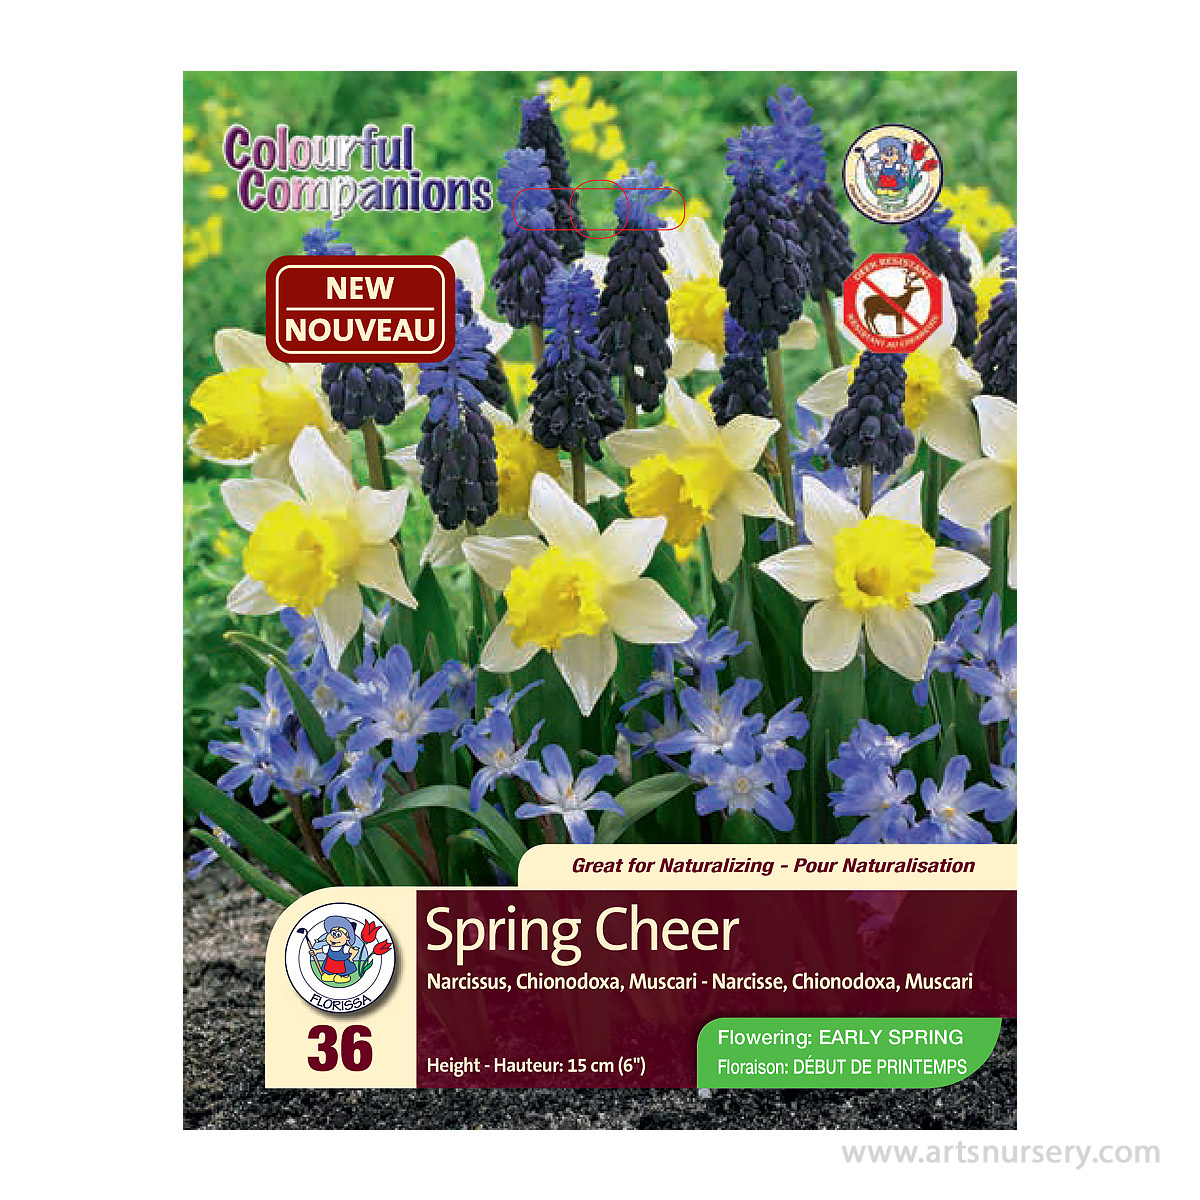 Colourful Companions Bulb Mix 'Spring Cheer'